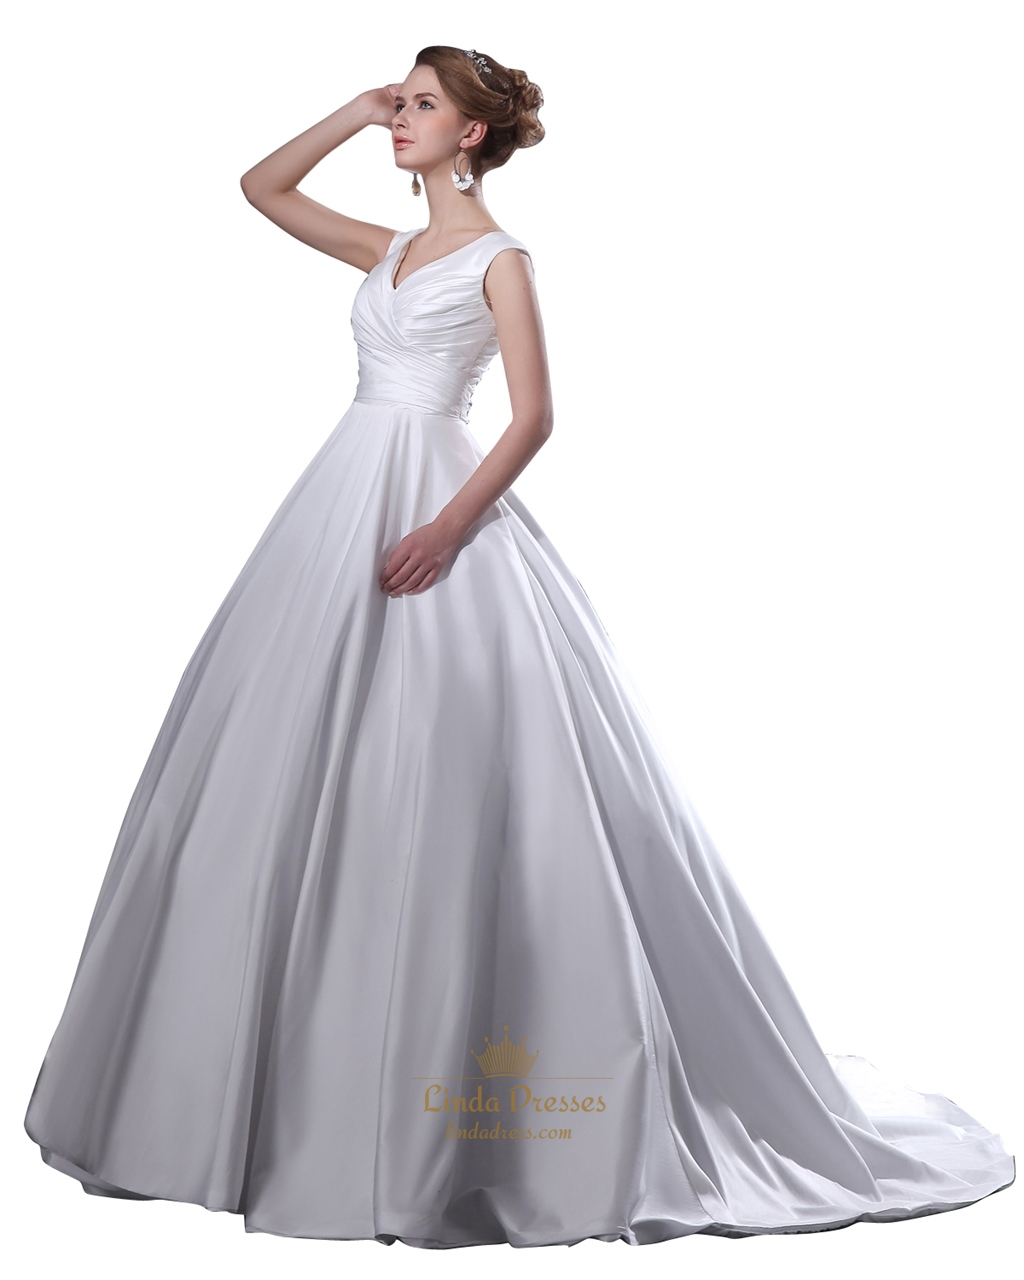 Beautiful Ball Gown Wedding Dresses: Beautiful White V Neck Ruched Bodice Princess Ball Gown